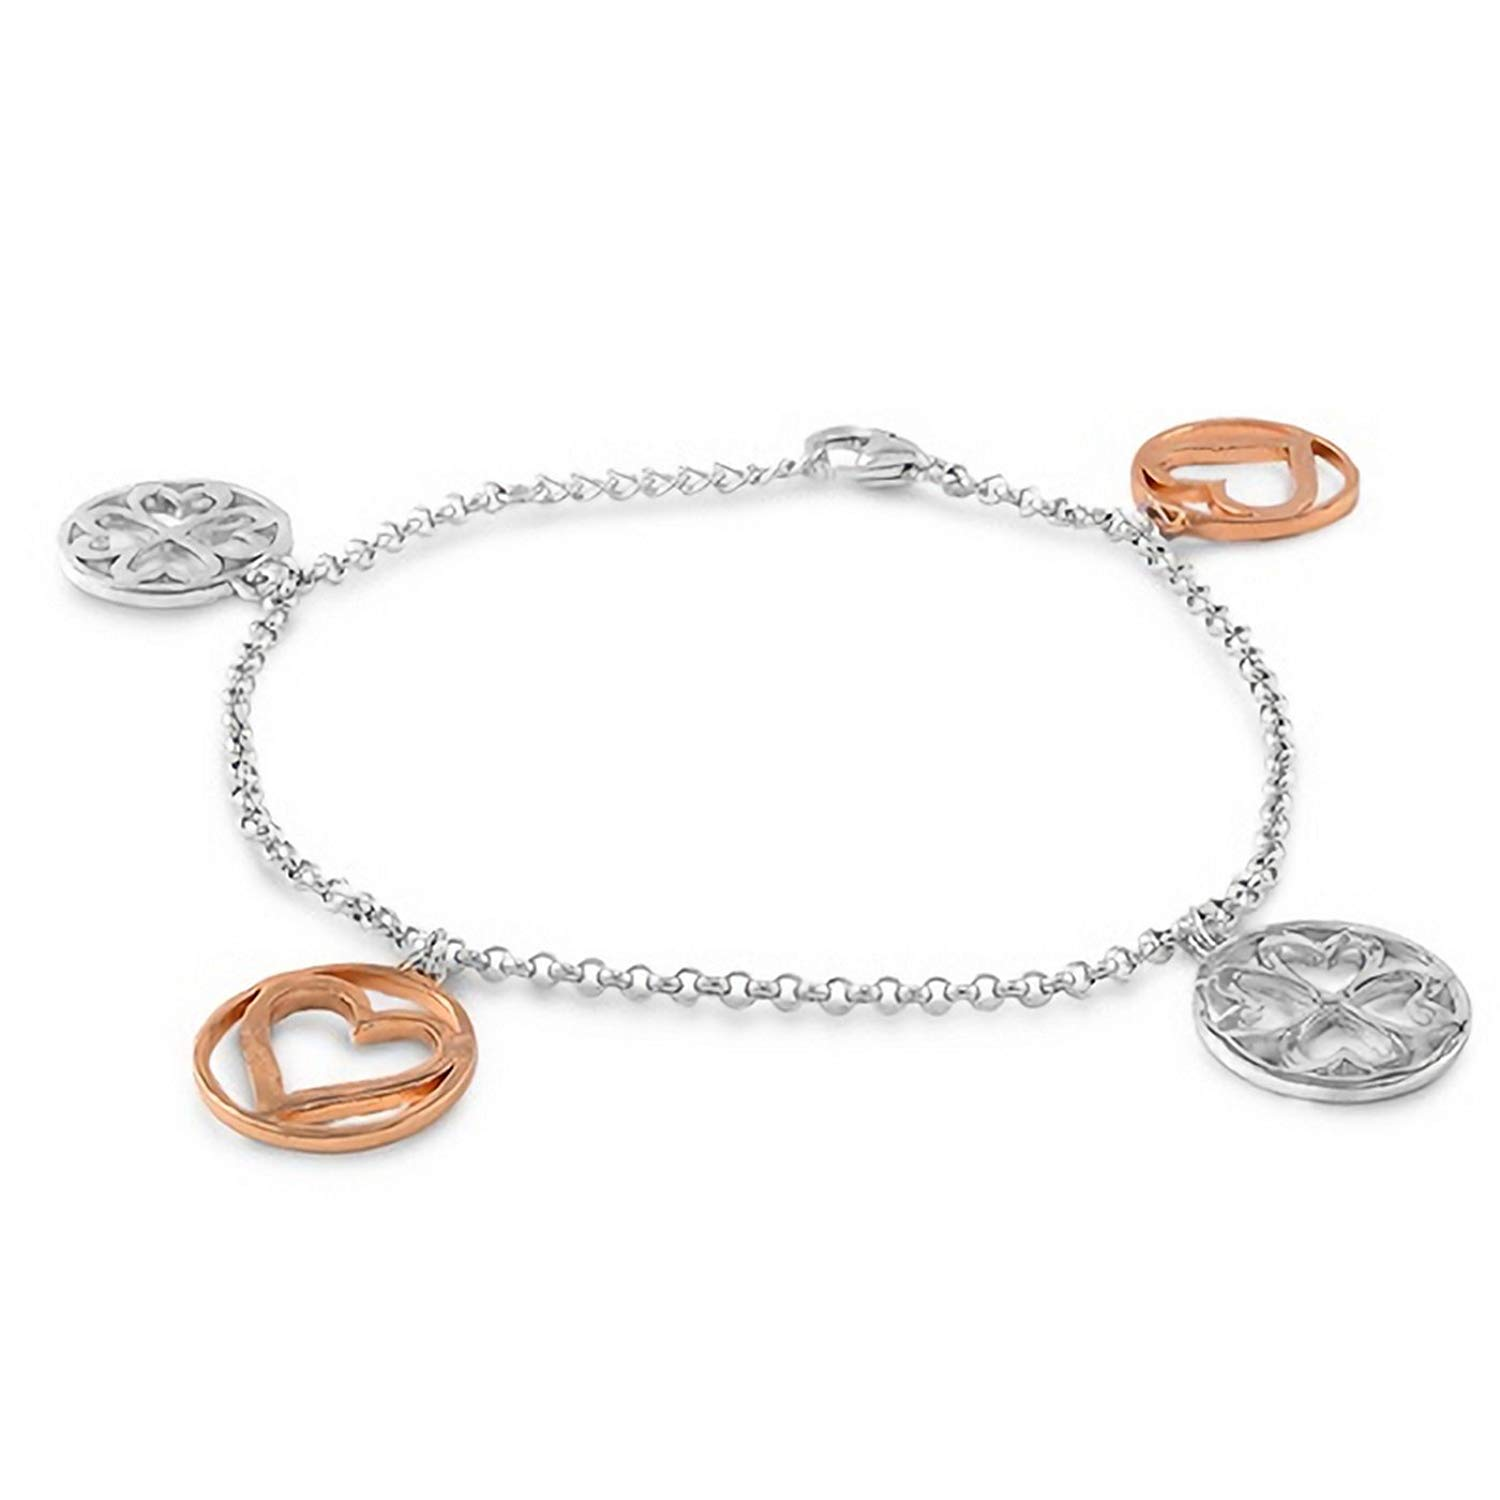 ad5d5dee4b0 Get Quotations · 14mm Circle Four Leaf Clover and Heart Charm Bracelet .925 Sterling  Silver 7.5inch Lobster